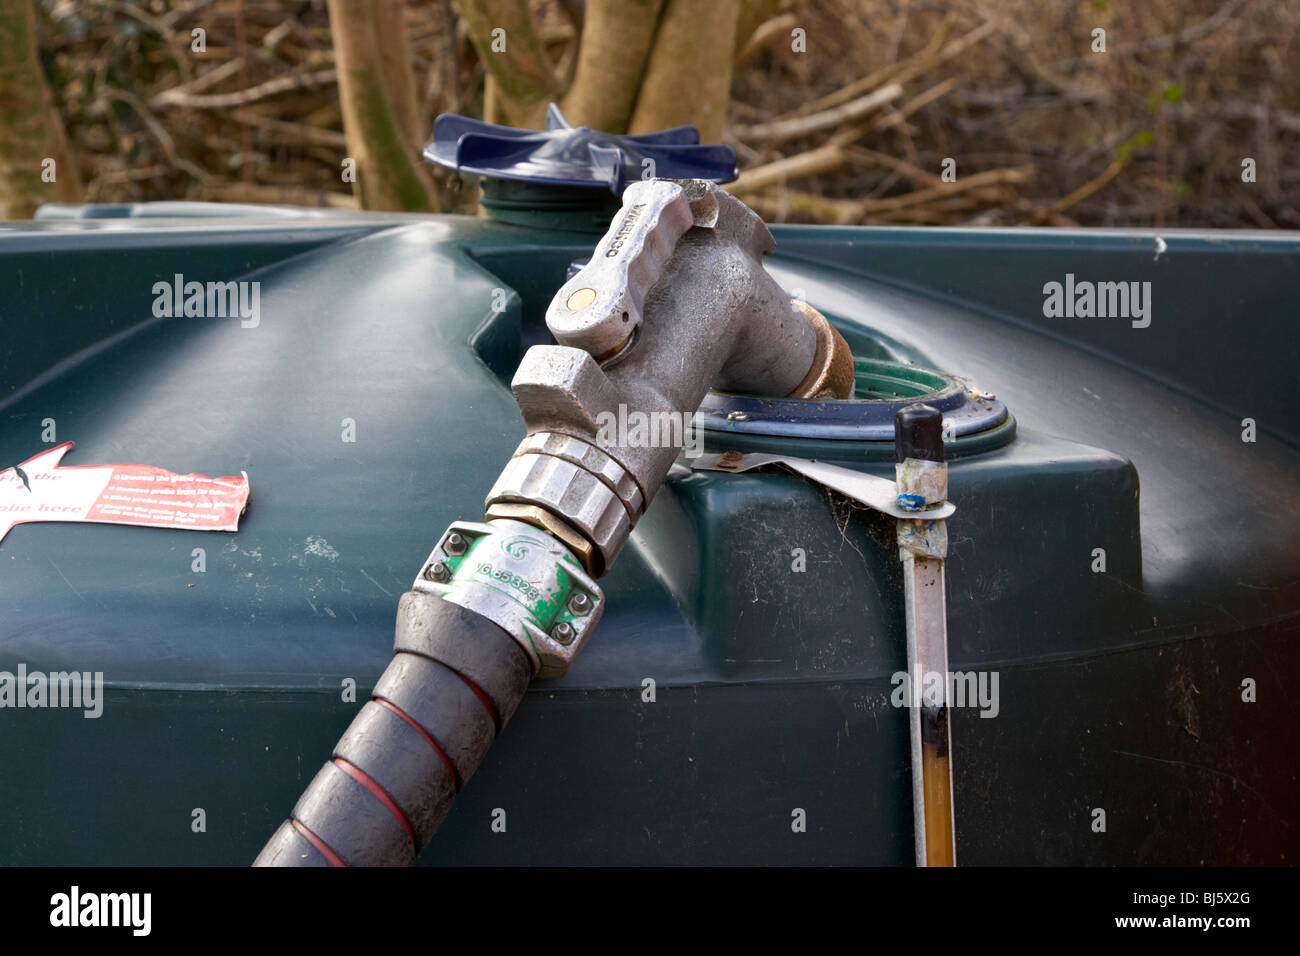 domestic home heating oil tank being refilled with 28 sec kerosene in a garden in northern ireland uk - Stock Image